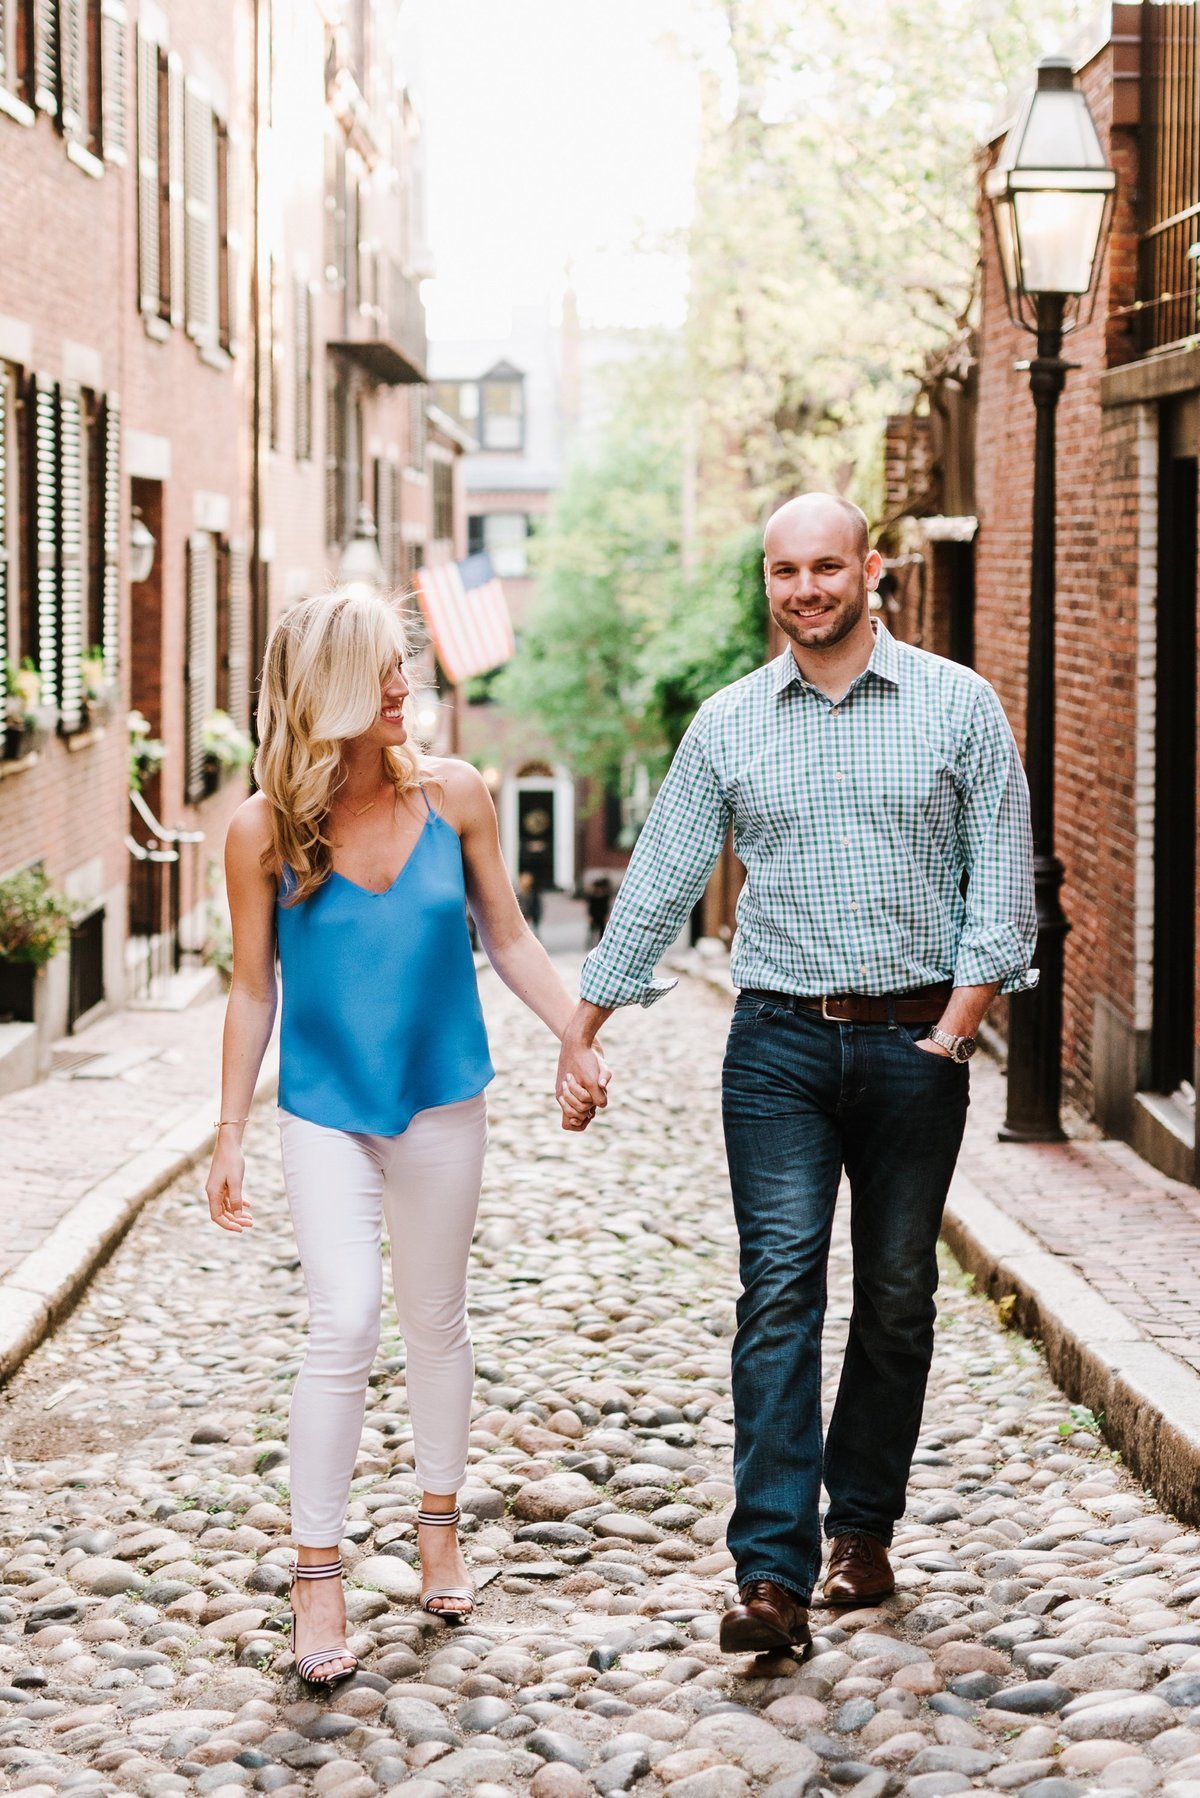 seaport-district-beacon-hill-engagement-session-boston-wedding-photographer-photo_0019